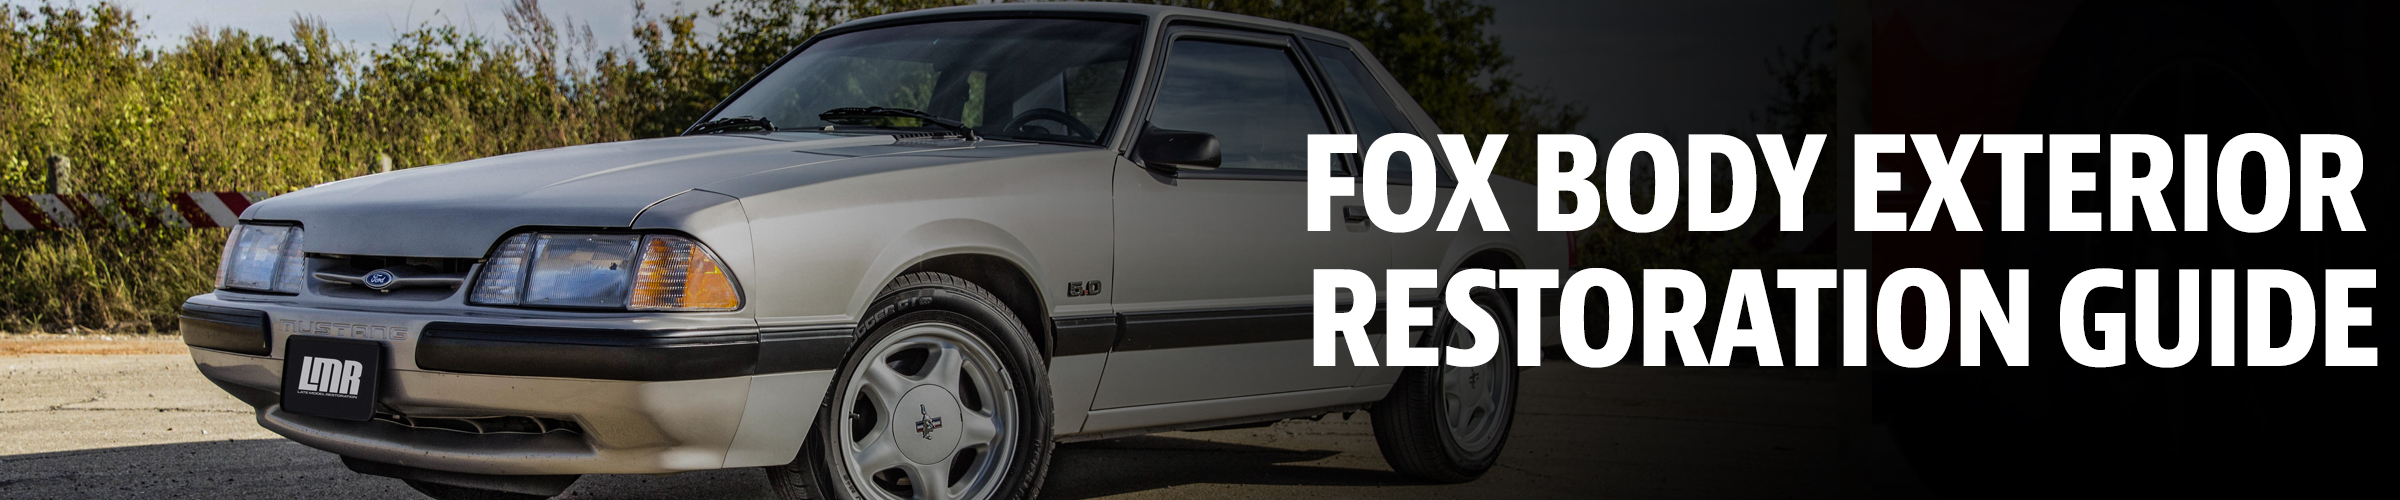 Fox Body Exterior Guide